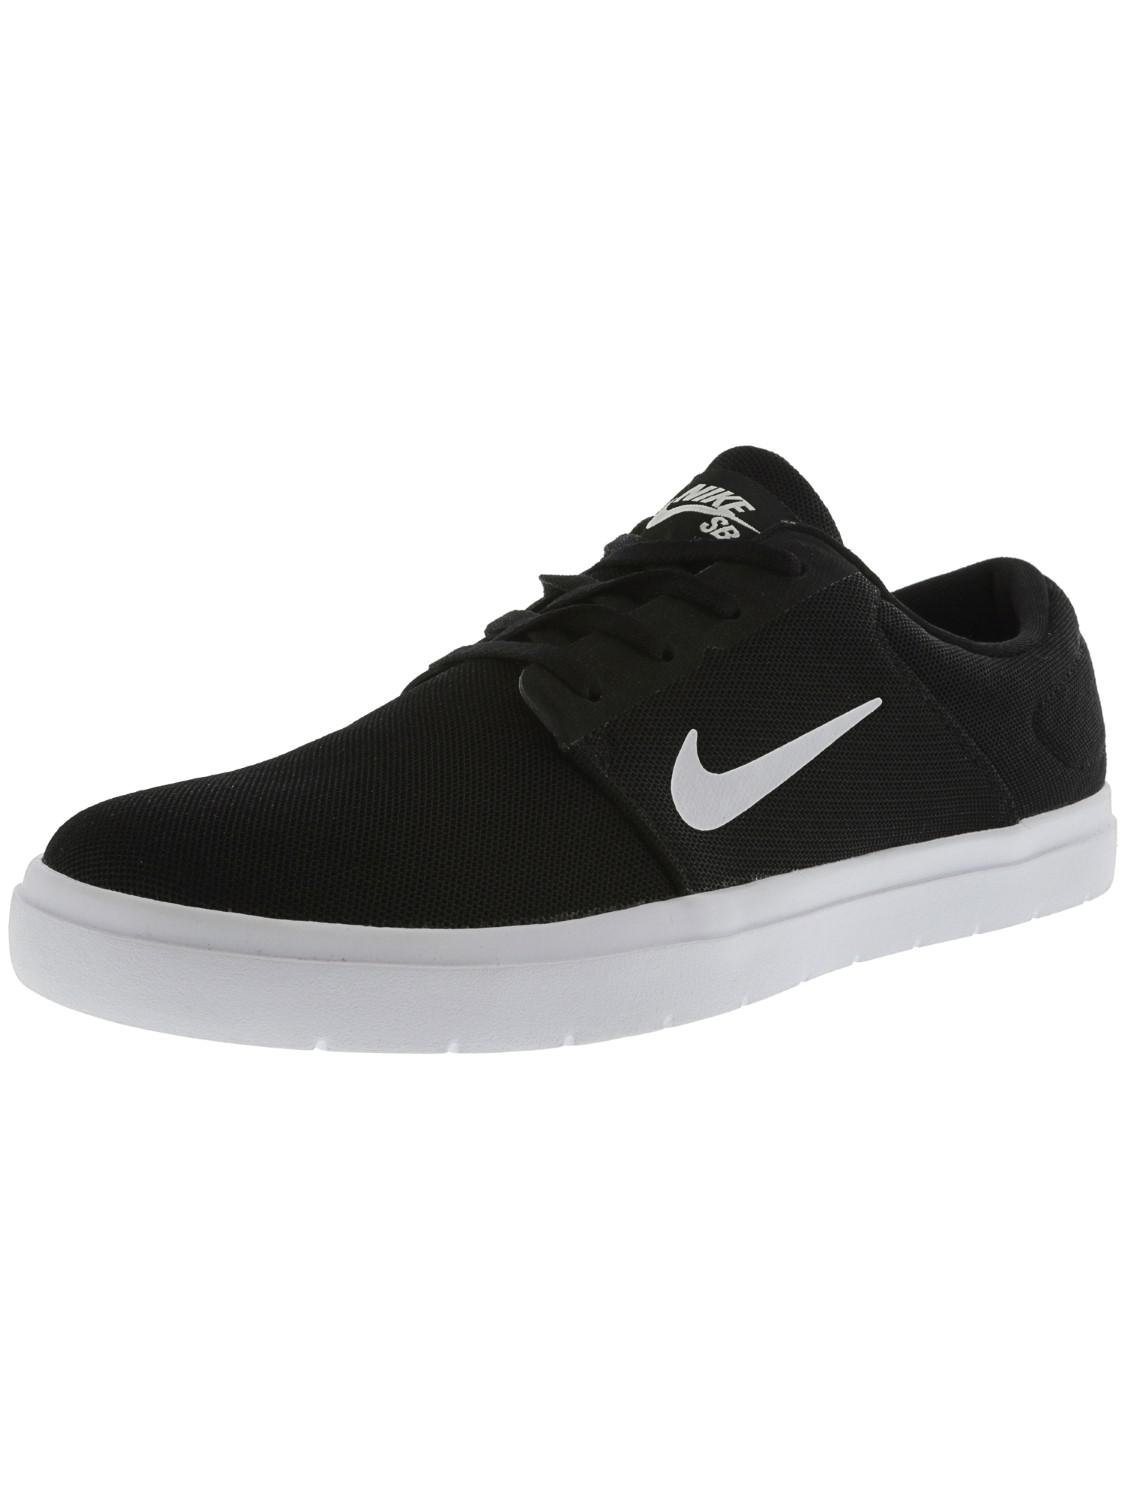 4ae9942ce304 Lyst - Nike Sb Portmore Renew Black   White Anthracite Ankle-high ...